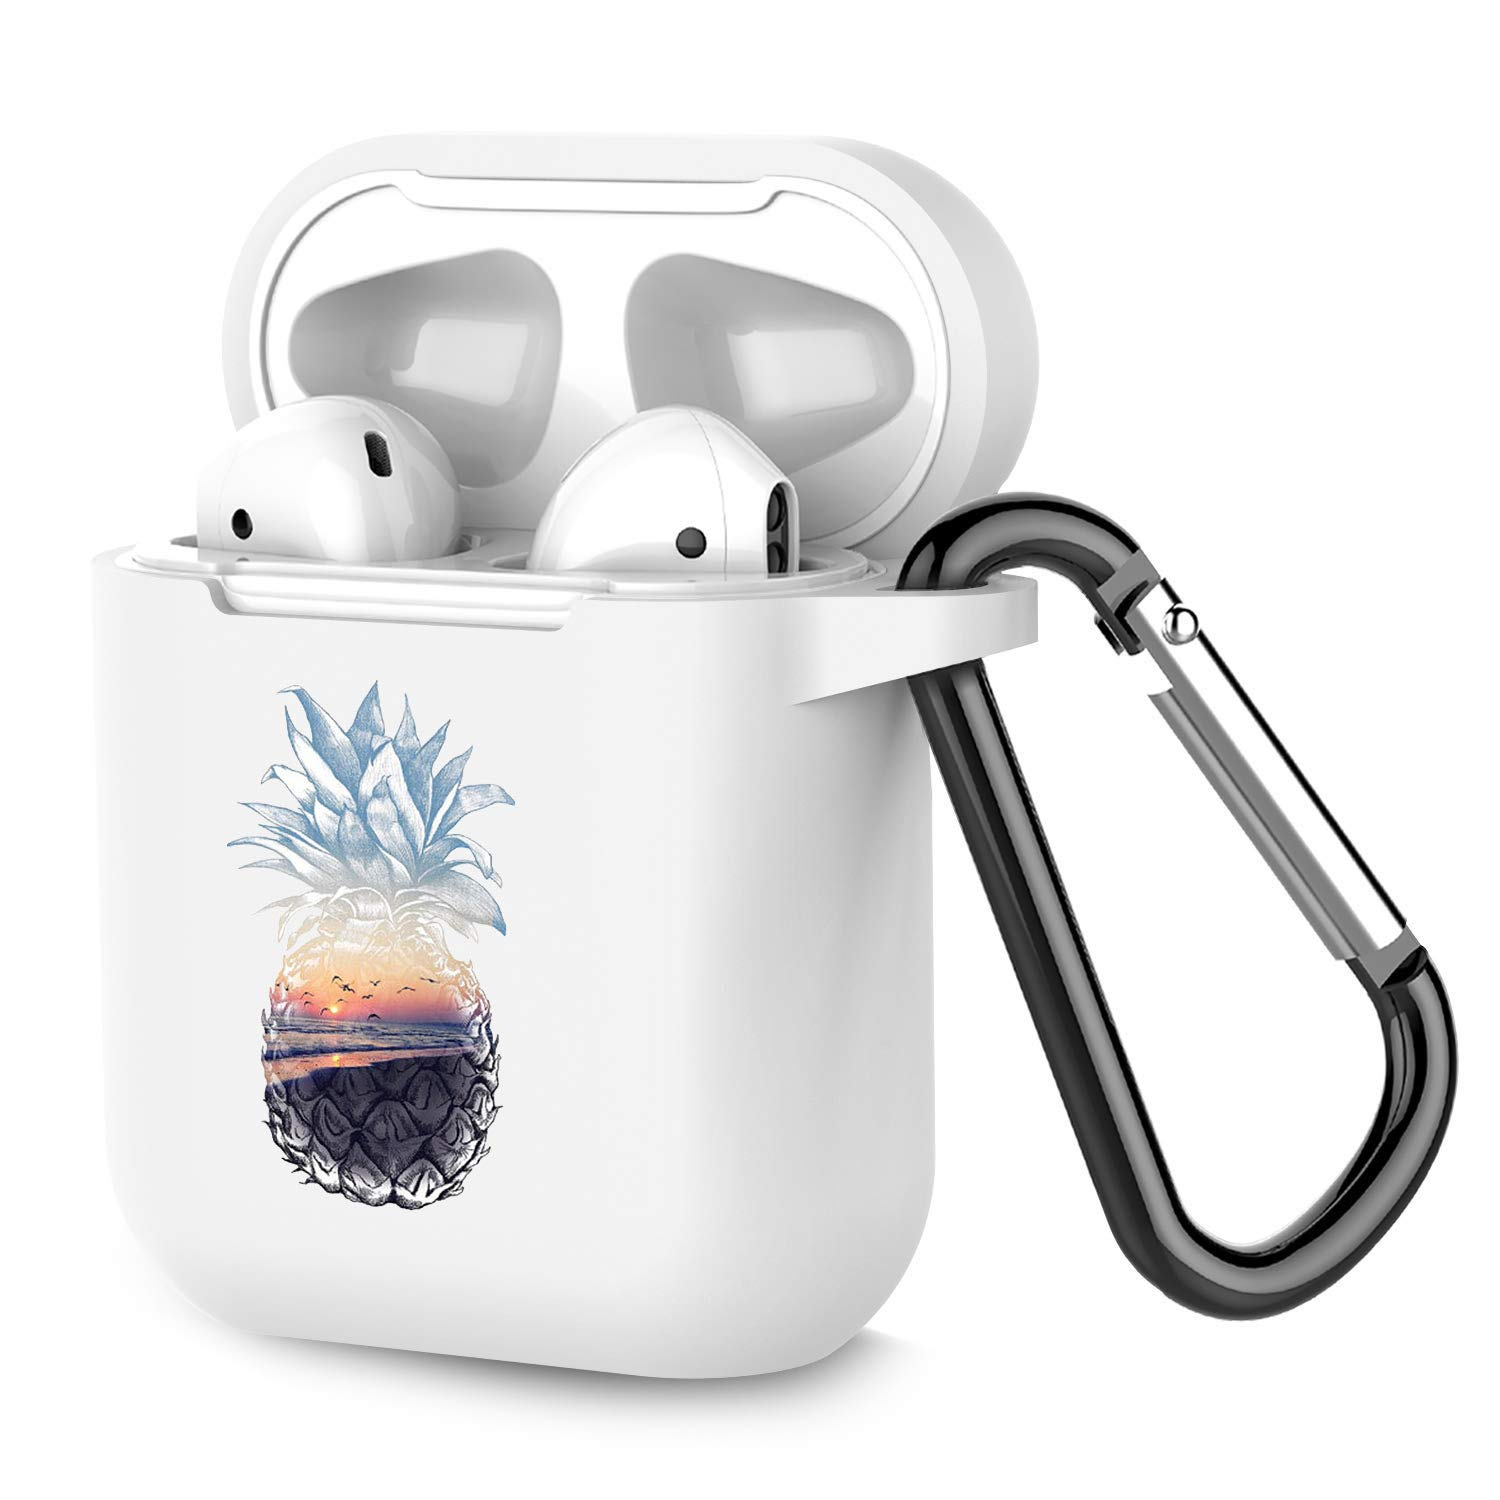 Airpods Case Personalized White TPU Soft Rubber Accessories Full Protective Shockproof Case for AirPods 2 & 1 Beach Pineapple